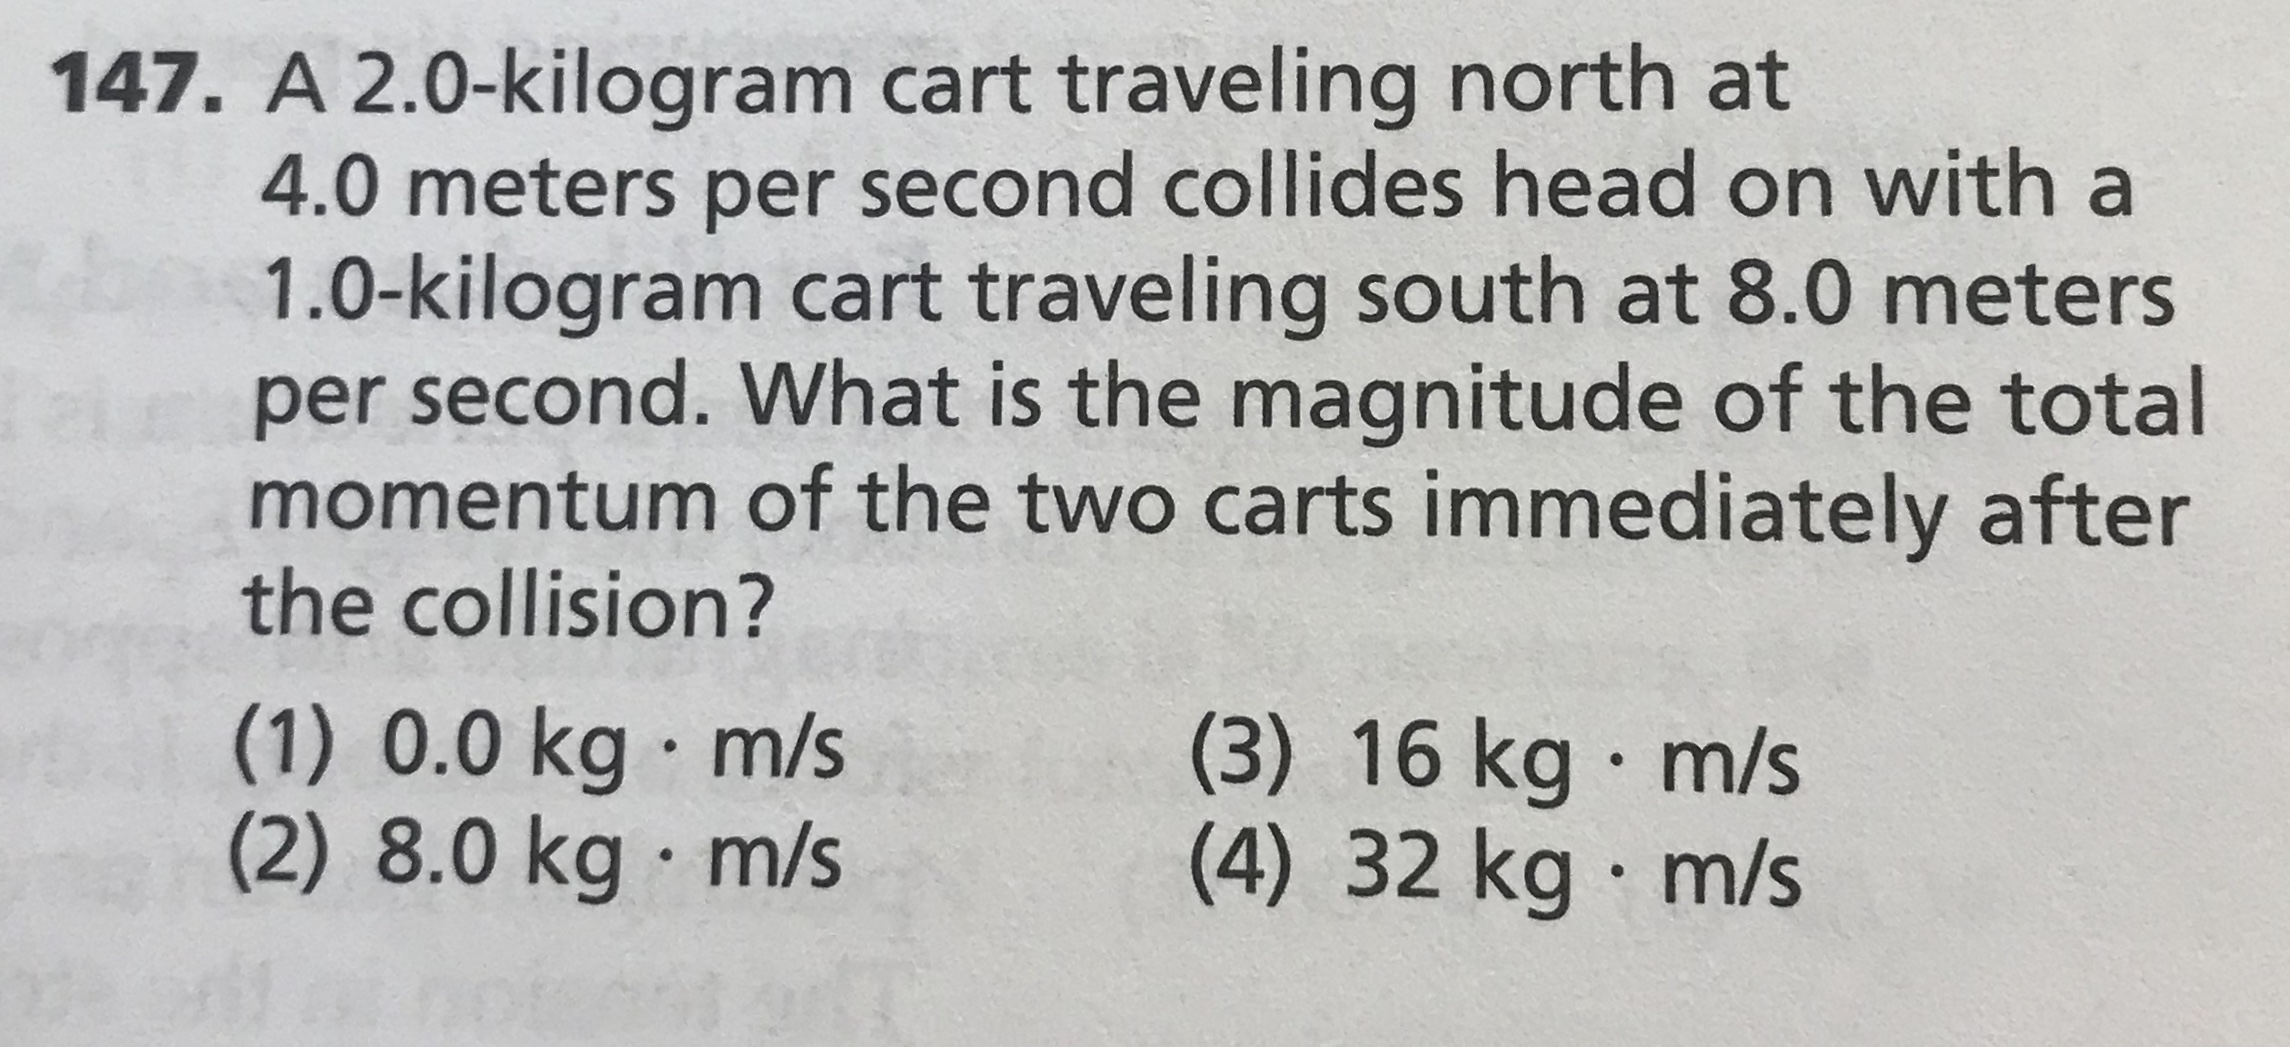 147. A 2.0-kilogram cart traveling north at 4.0 meters per second collides head on with a 1.0-kilogram cart traveling south at 8.0 meters iper second. What is the magnitude of the total momentum of the two carts immediately after the collision? (1) 0.0 kg m/s (2) 8.0 kg · m/s (3) 16 kg m/s (4) 32kg m/s